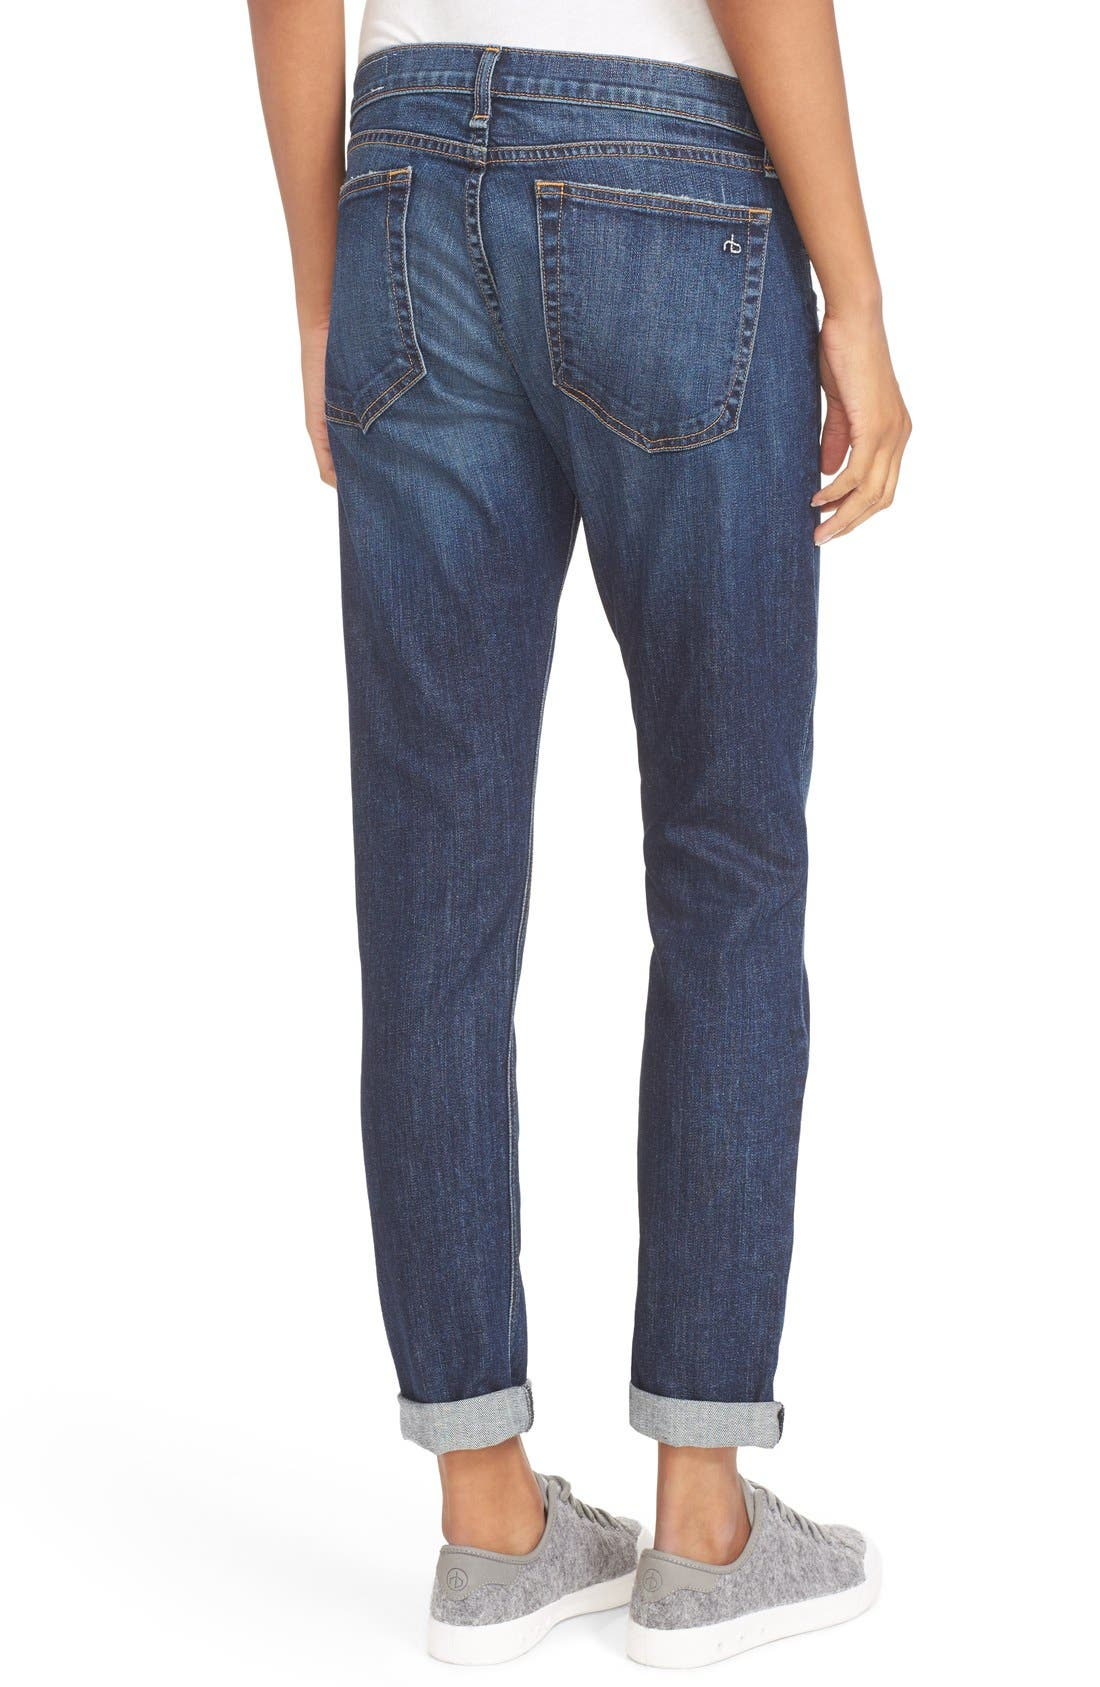 RAG & BONE, The Dre Slim Boyfriend Jeans, Alternate thumbnail 2, color, 423